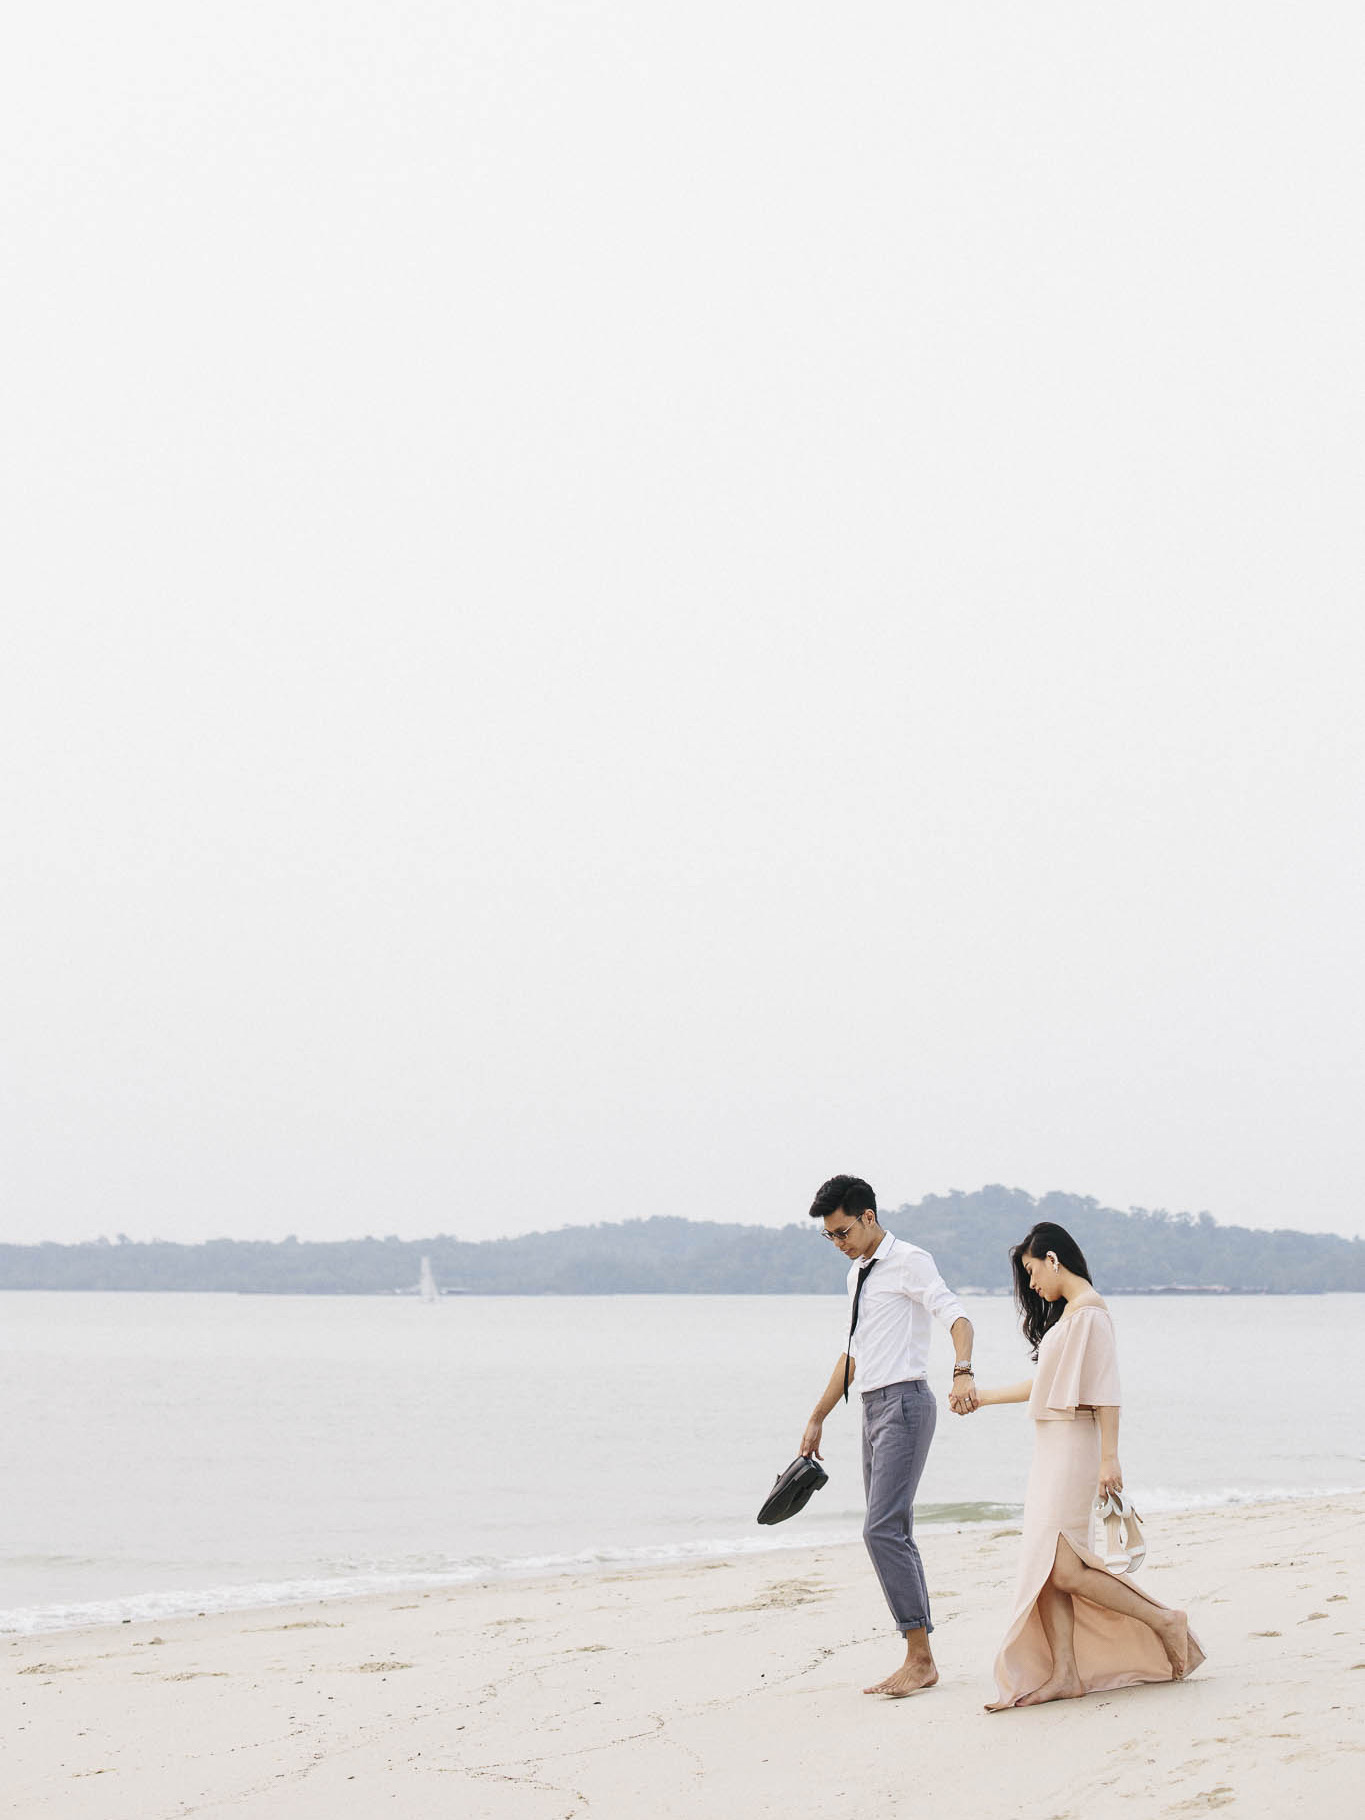 singapore-wedding-photographer-malay-travel-adli-tashah-27.jpg